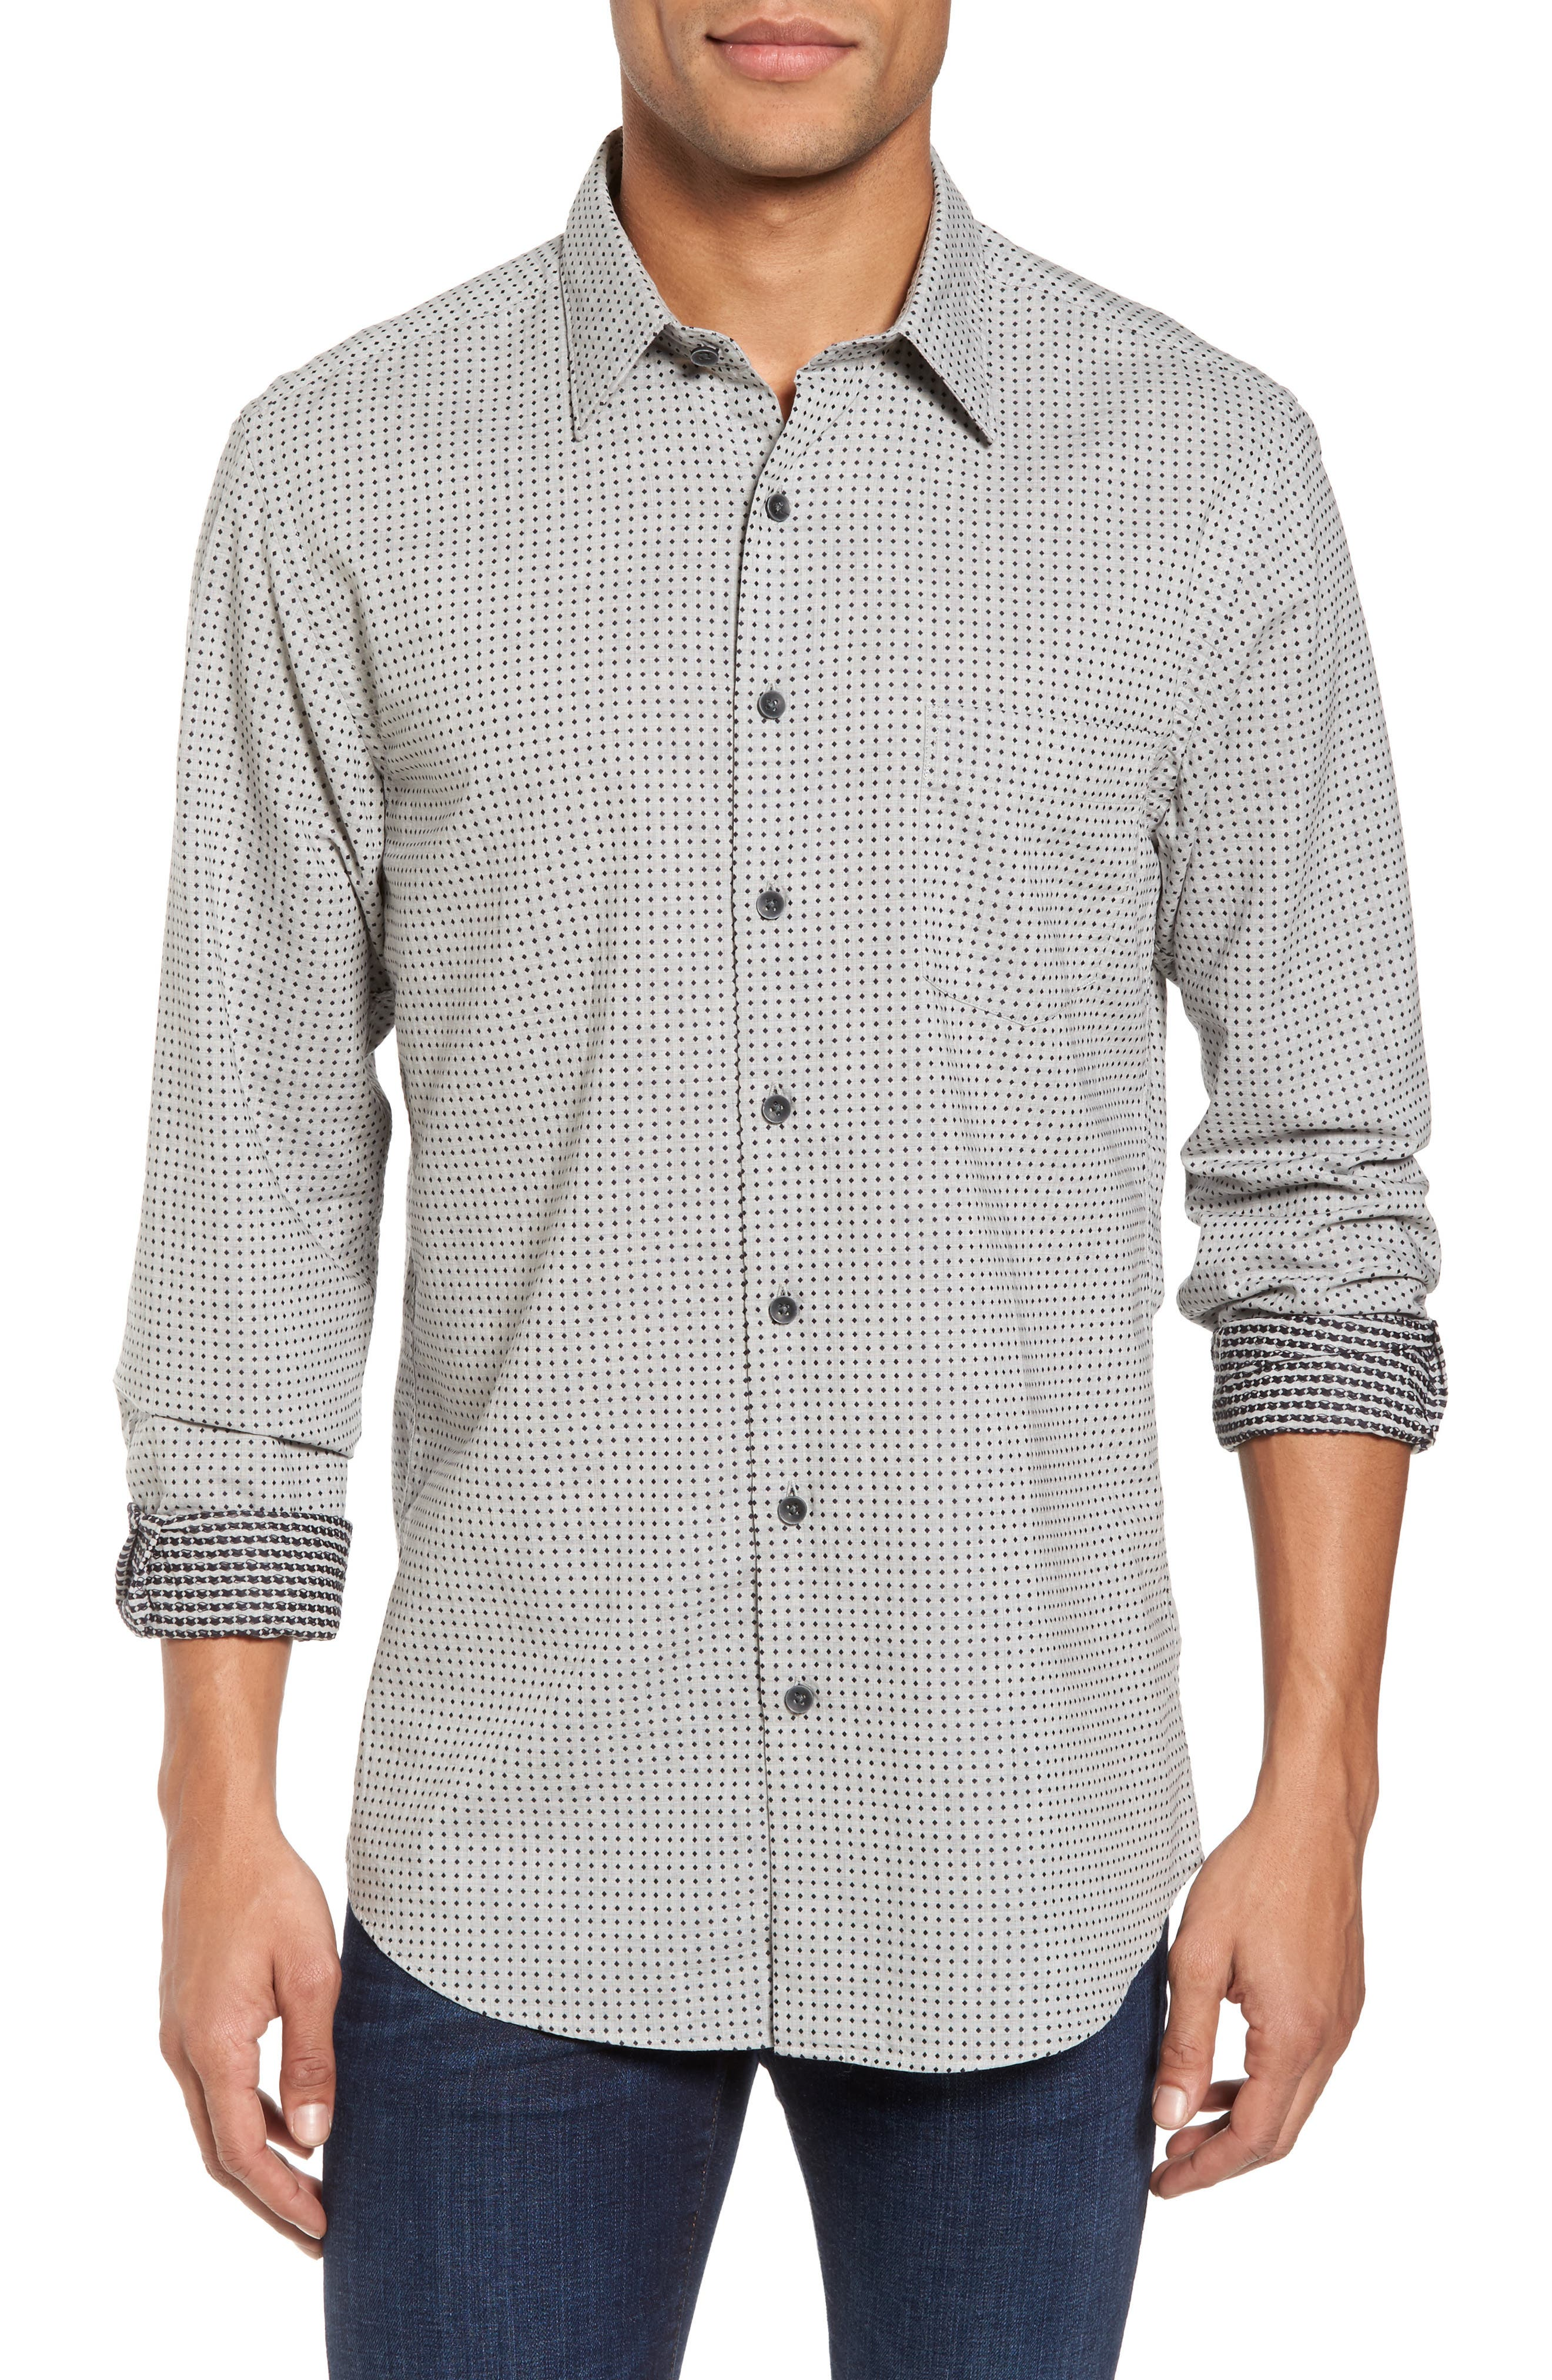 Rodd & Gunn Judgeford Slim Fit Jacquard Sport Shirt